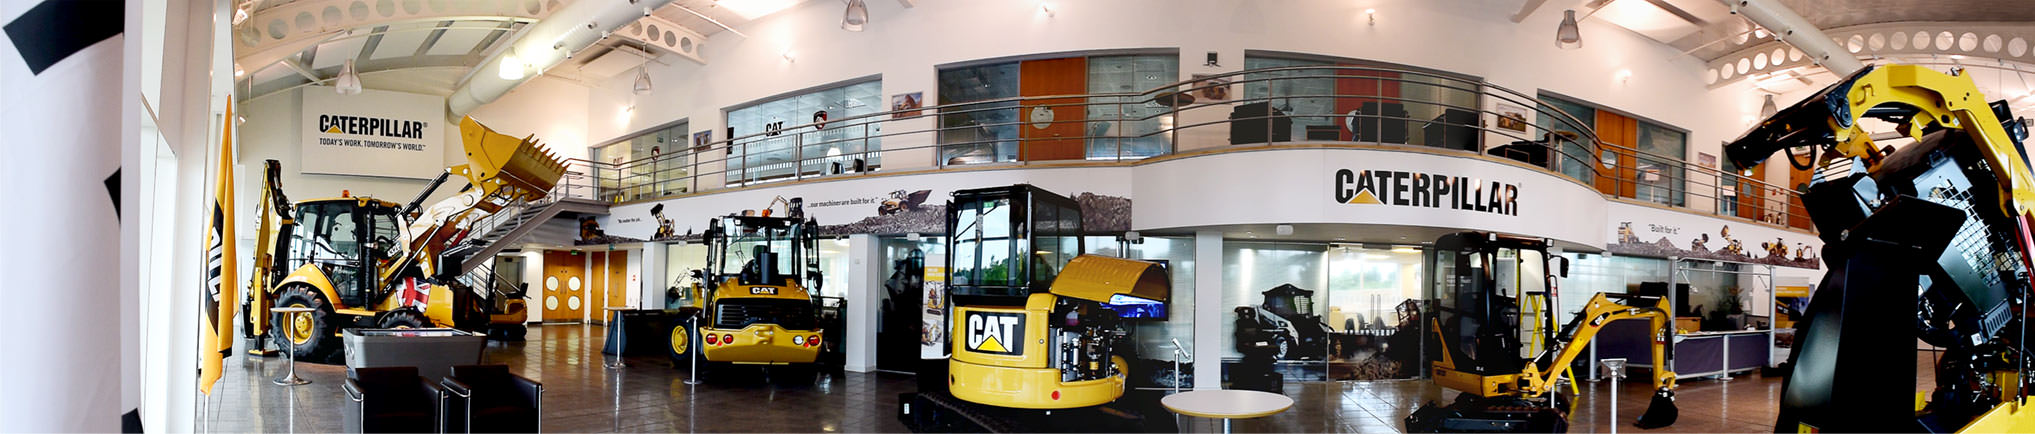 Caterpillar Training and Visitor Centre, Desford, Leicestershire